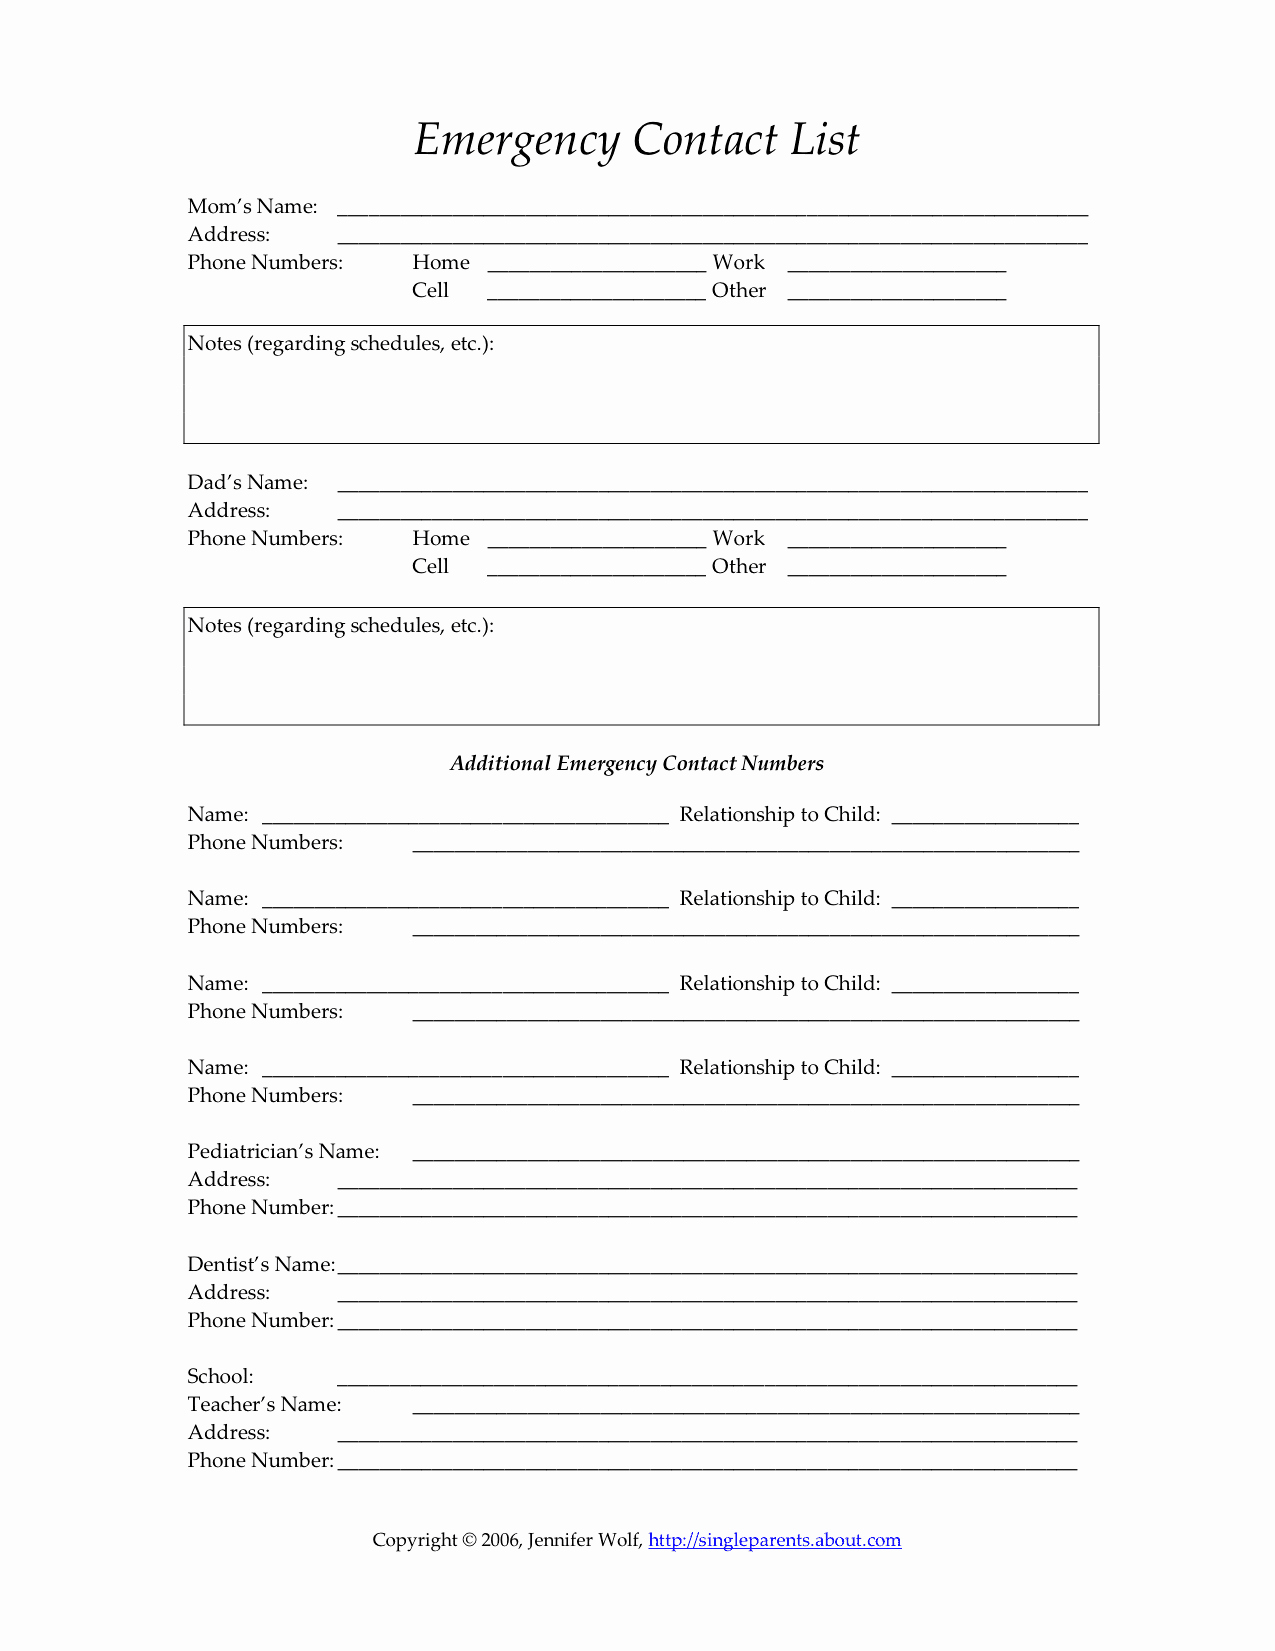 Emergency Contact form for Children Inspirational Child S Emergency Contact form